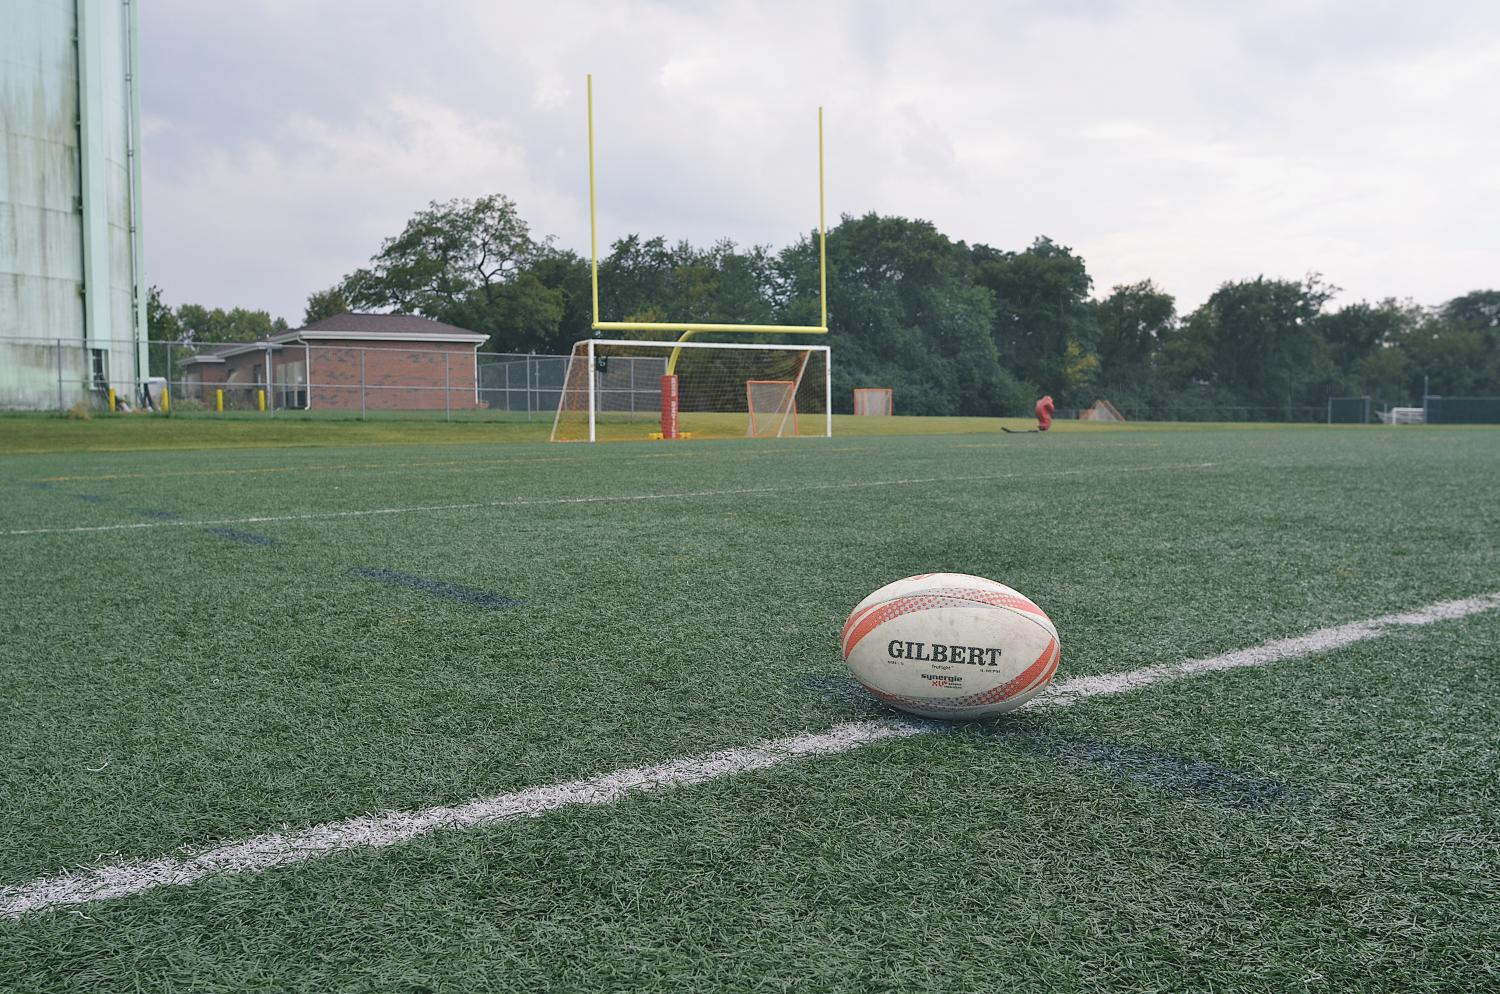 The cancellation of the rugby team creates an empty void for former players and the field. The team did not receive renewal this school year with the absence of sponsors for the coaching positions.